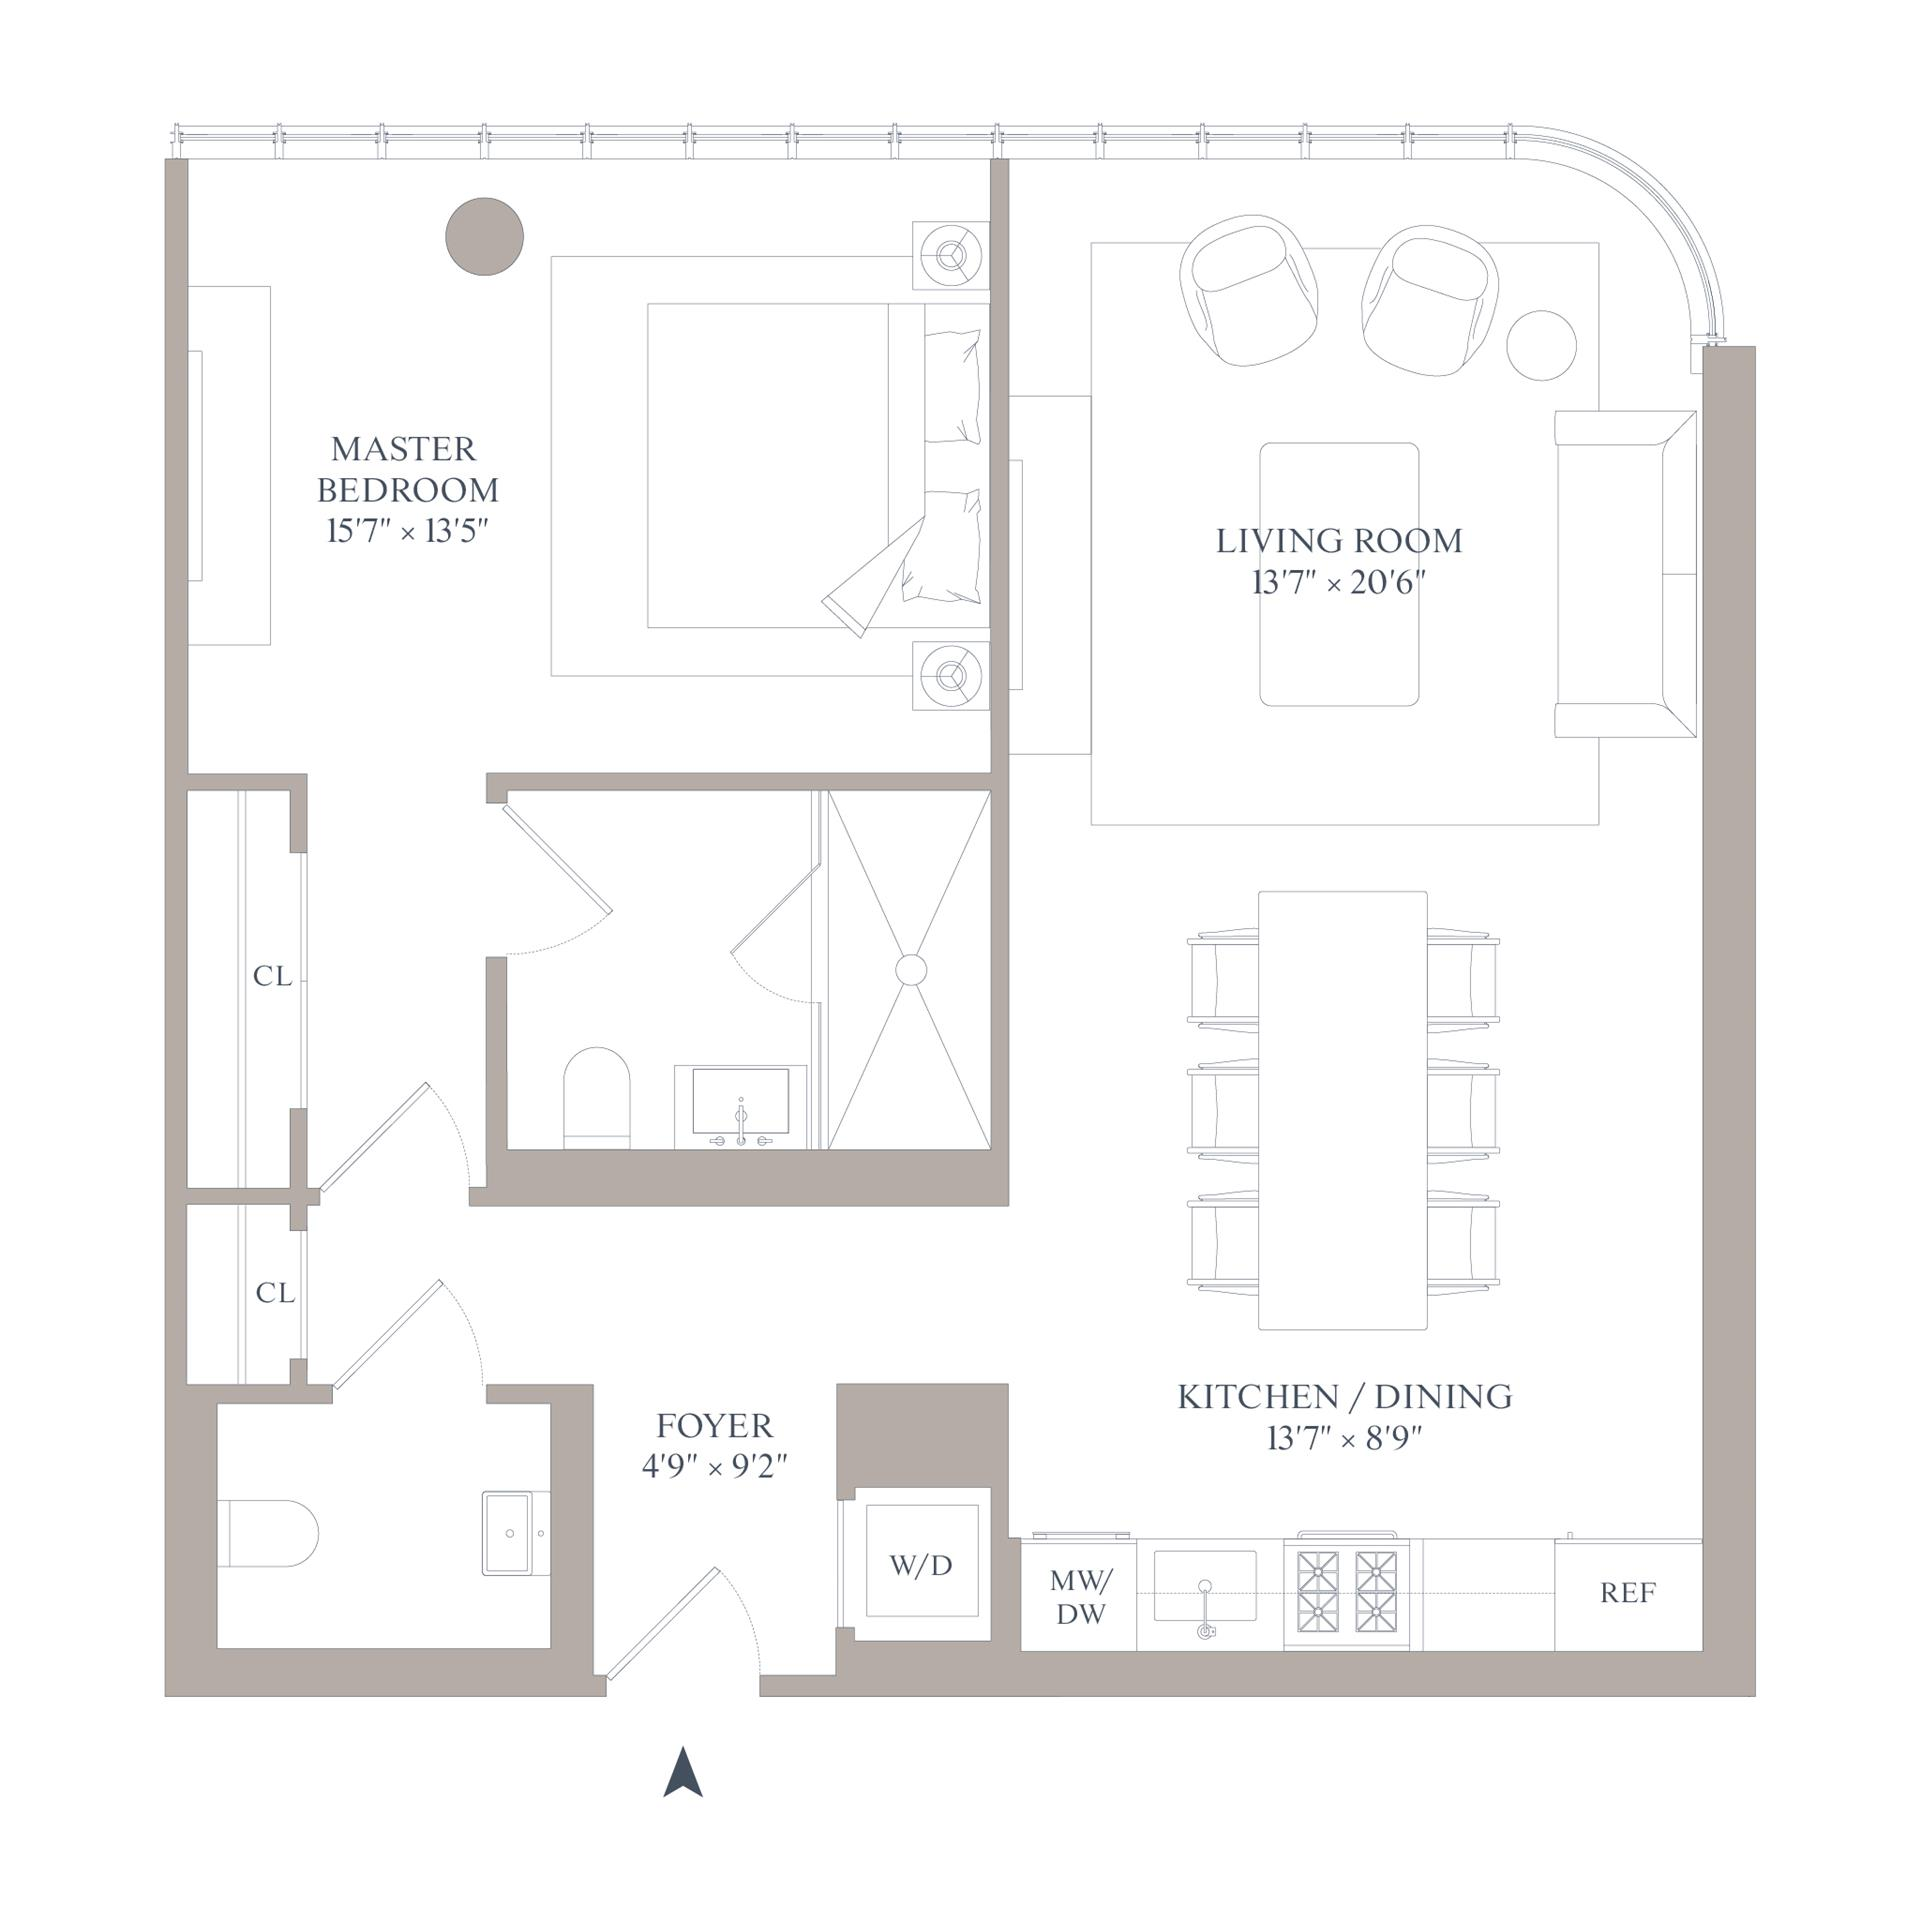 Floor plan of 565 Broome St, N8D - SoHo - Nolita, New York